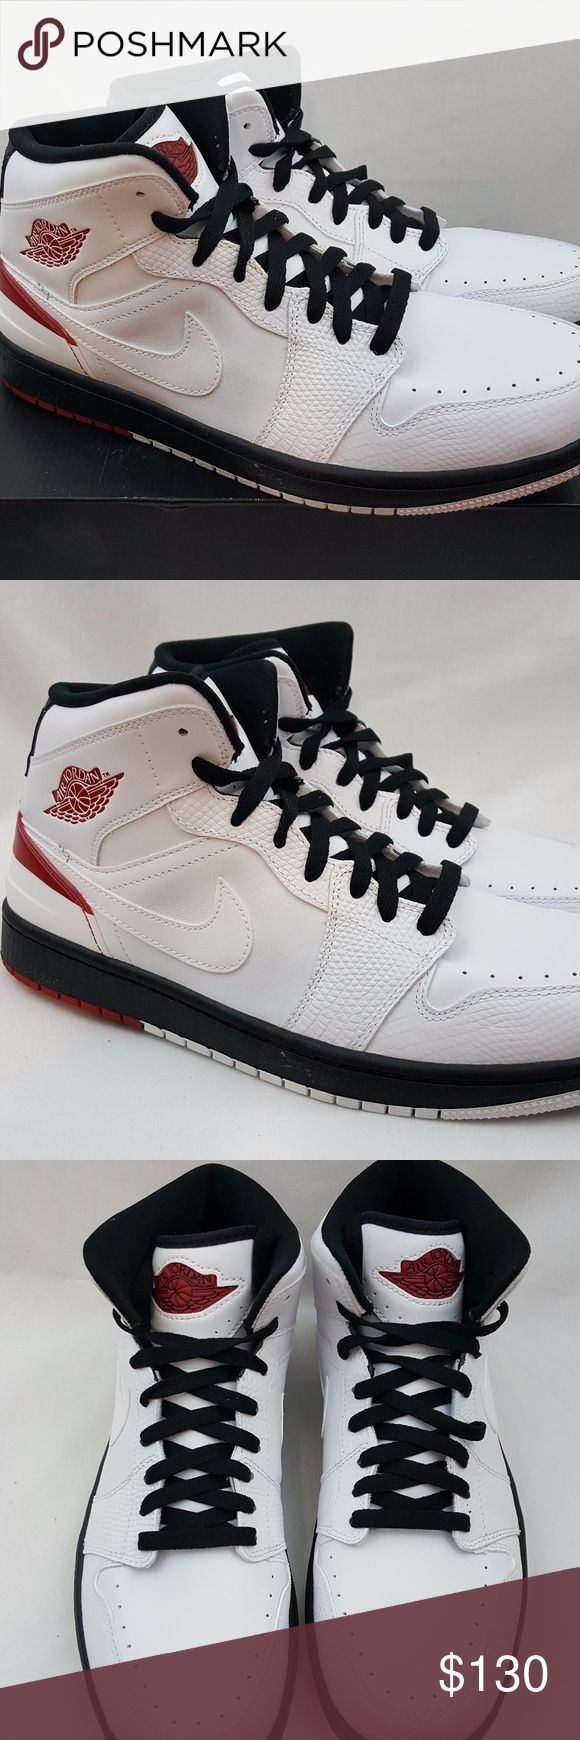 Nike Air Jordan 1 Retro '86 Size 10.5 Nike Air Jordan 1 Retro '86 White Gym Red Black Lifestyle 644490 101 Size 10.5 Brand: Nike Name: Air Jordan 1 Retro '86 Colorway: White Red Style Code: 644490 101 Year of Release: 2014 Size: 10.5 Condition: Brand new with box. Box is missing the lid. Included Accessories: NA Additional Information: 100% authentic merchandise or your payment will be refunded in full. Air Jordan Shoes Athletic Shoes